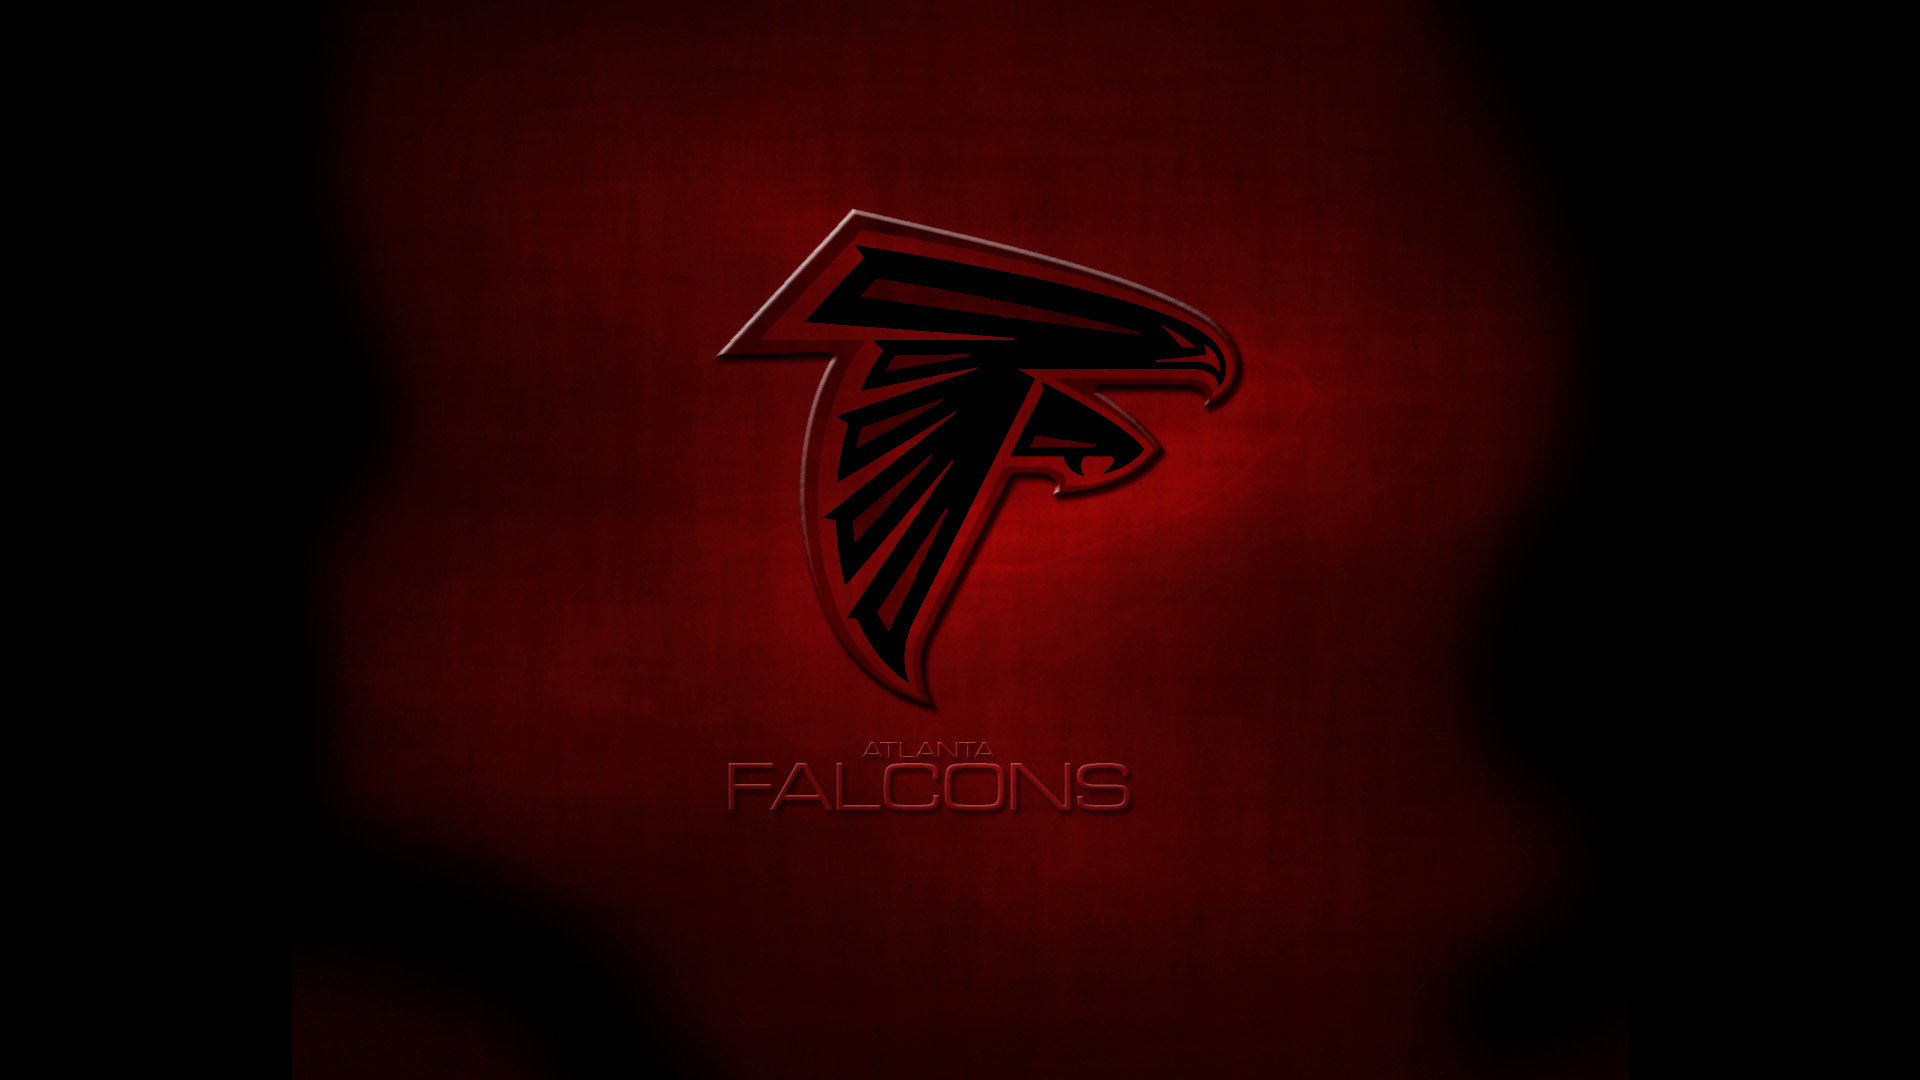 Atlanta Falcons Wallpapers Hd: 6 Atlanta Falcons HD Wallpapers